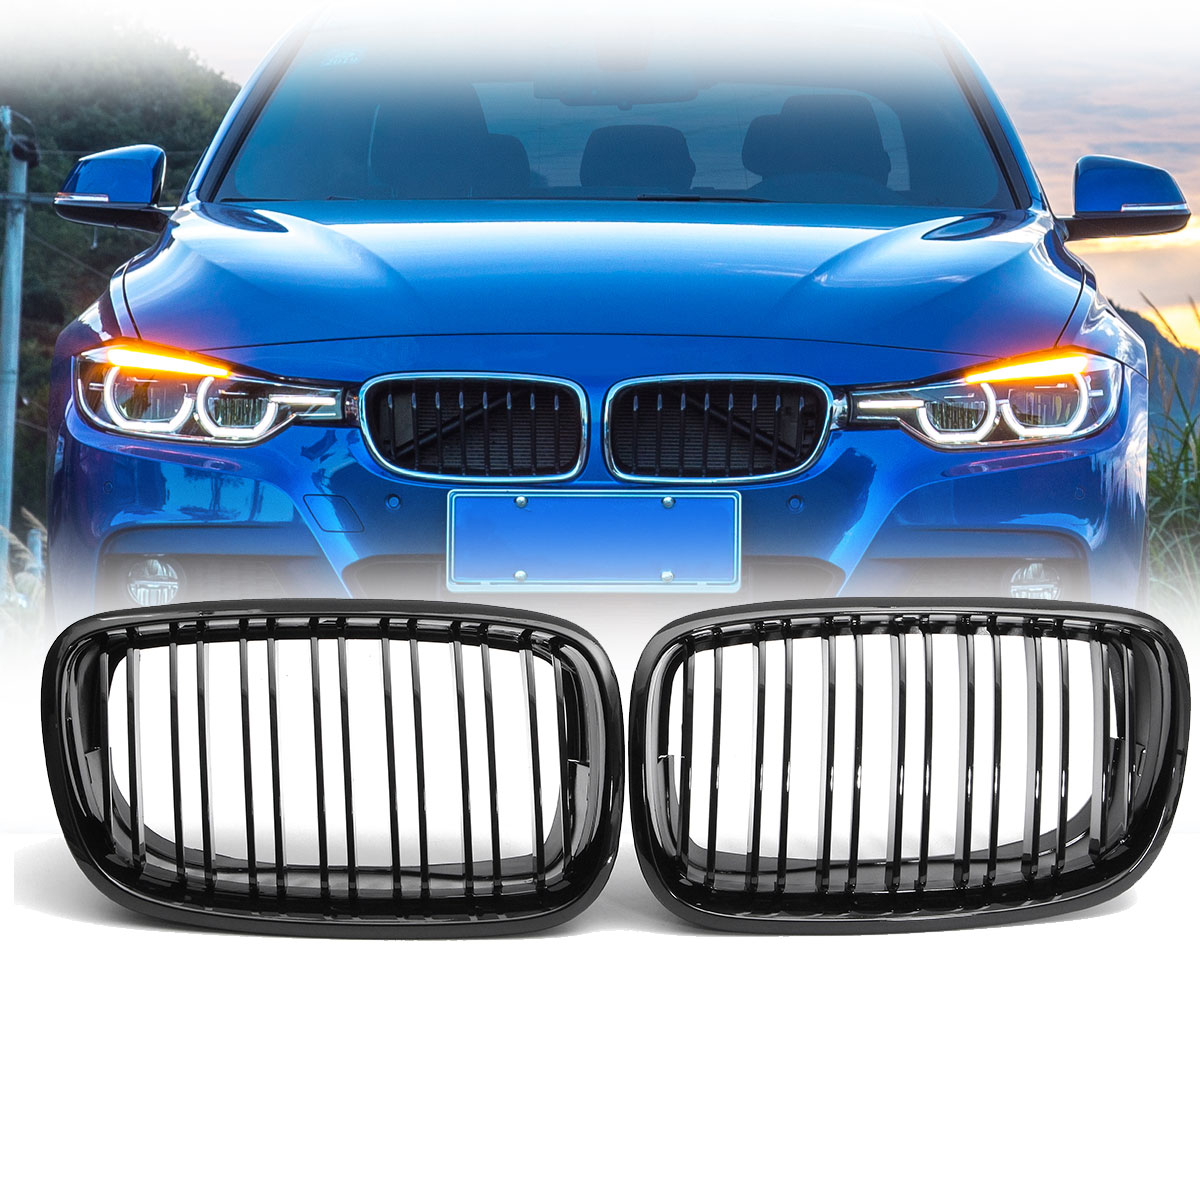 Pair Matte/Gloss Black Double Slat Kidney Grille Front Grill For BMW X5 X6 E70 E71 2007-2013 Car Styling Racing Grills 1pair matte black double slat kidney grille front grill for bmw e70 e71 model x5 x6 suv m sport xdrive 2008 2012 car styling